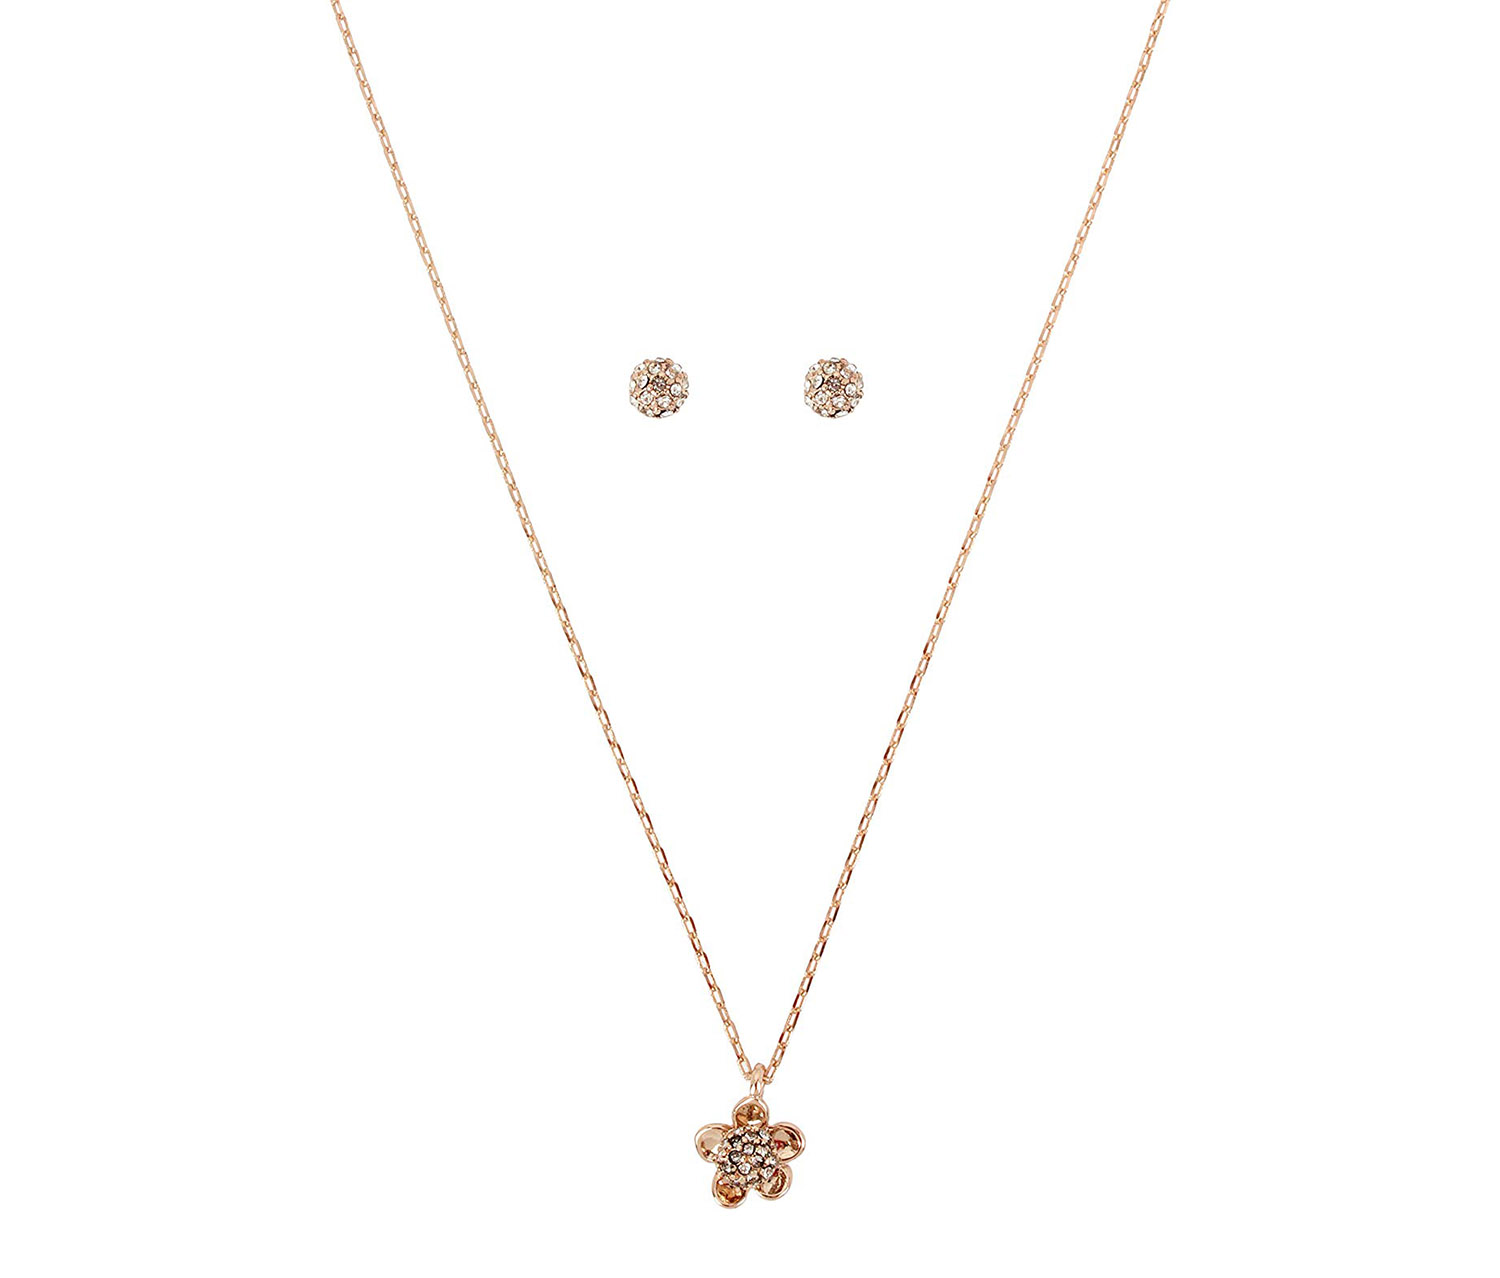 Necklace with Pendant and Earrings, Rose Gold